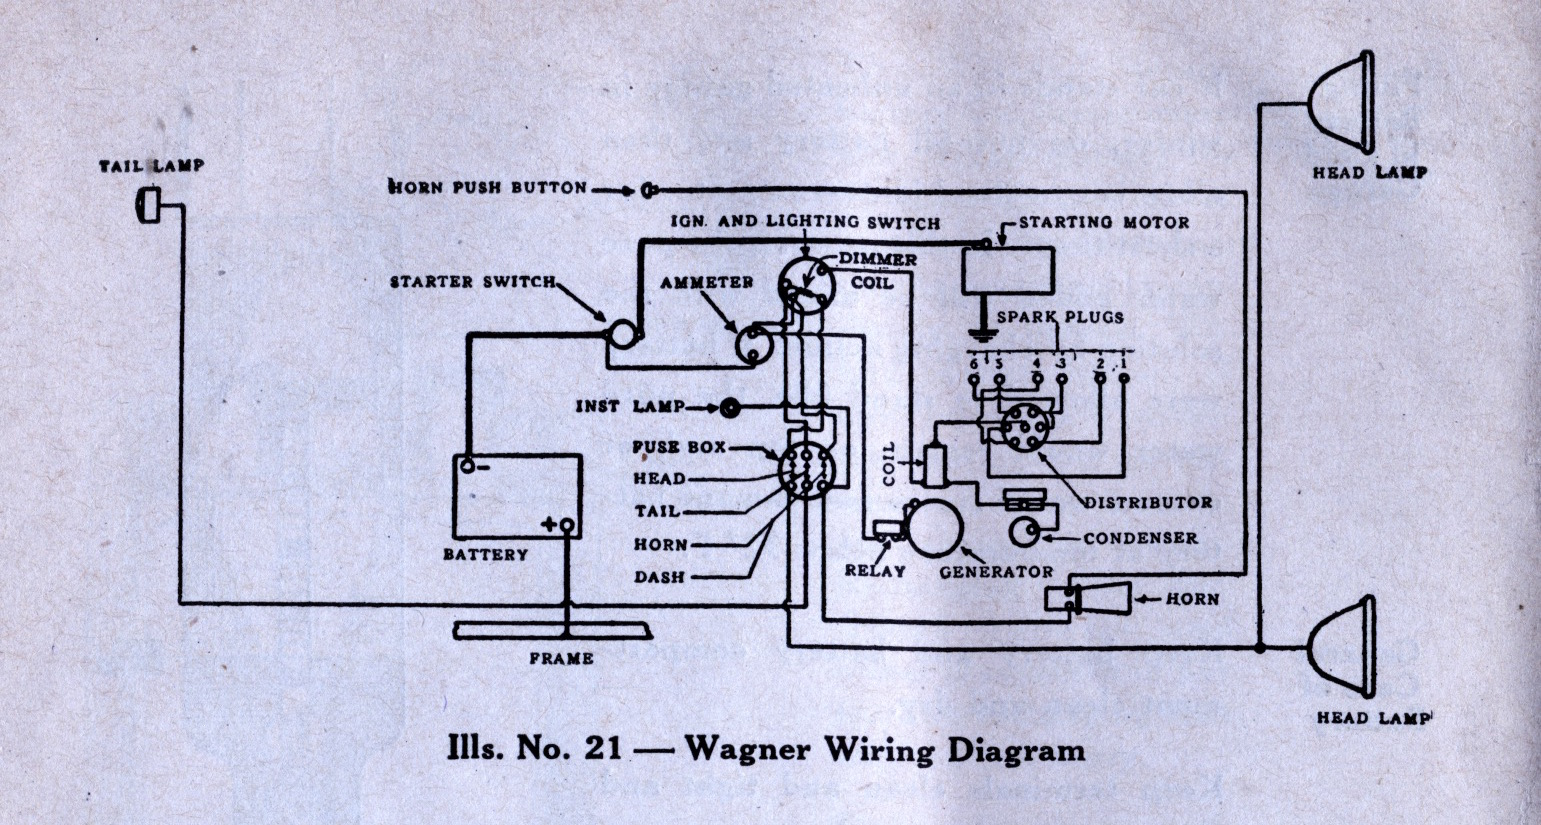 Tel Tach Wiring Diagram Yamaha Just Another Wiring Diagram Blog